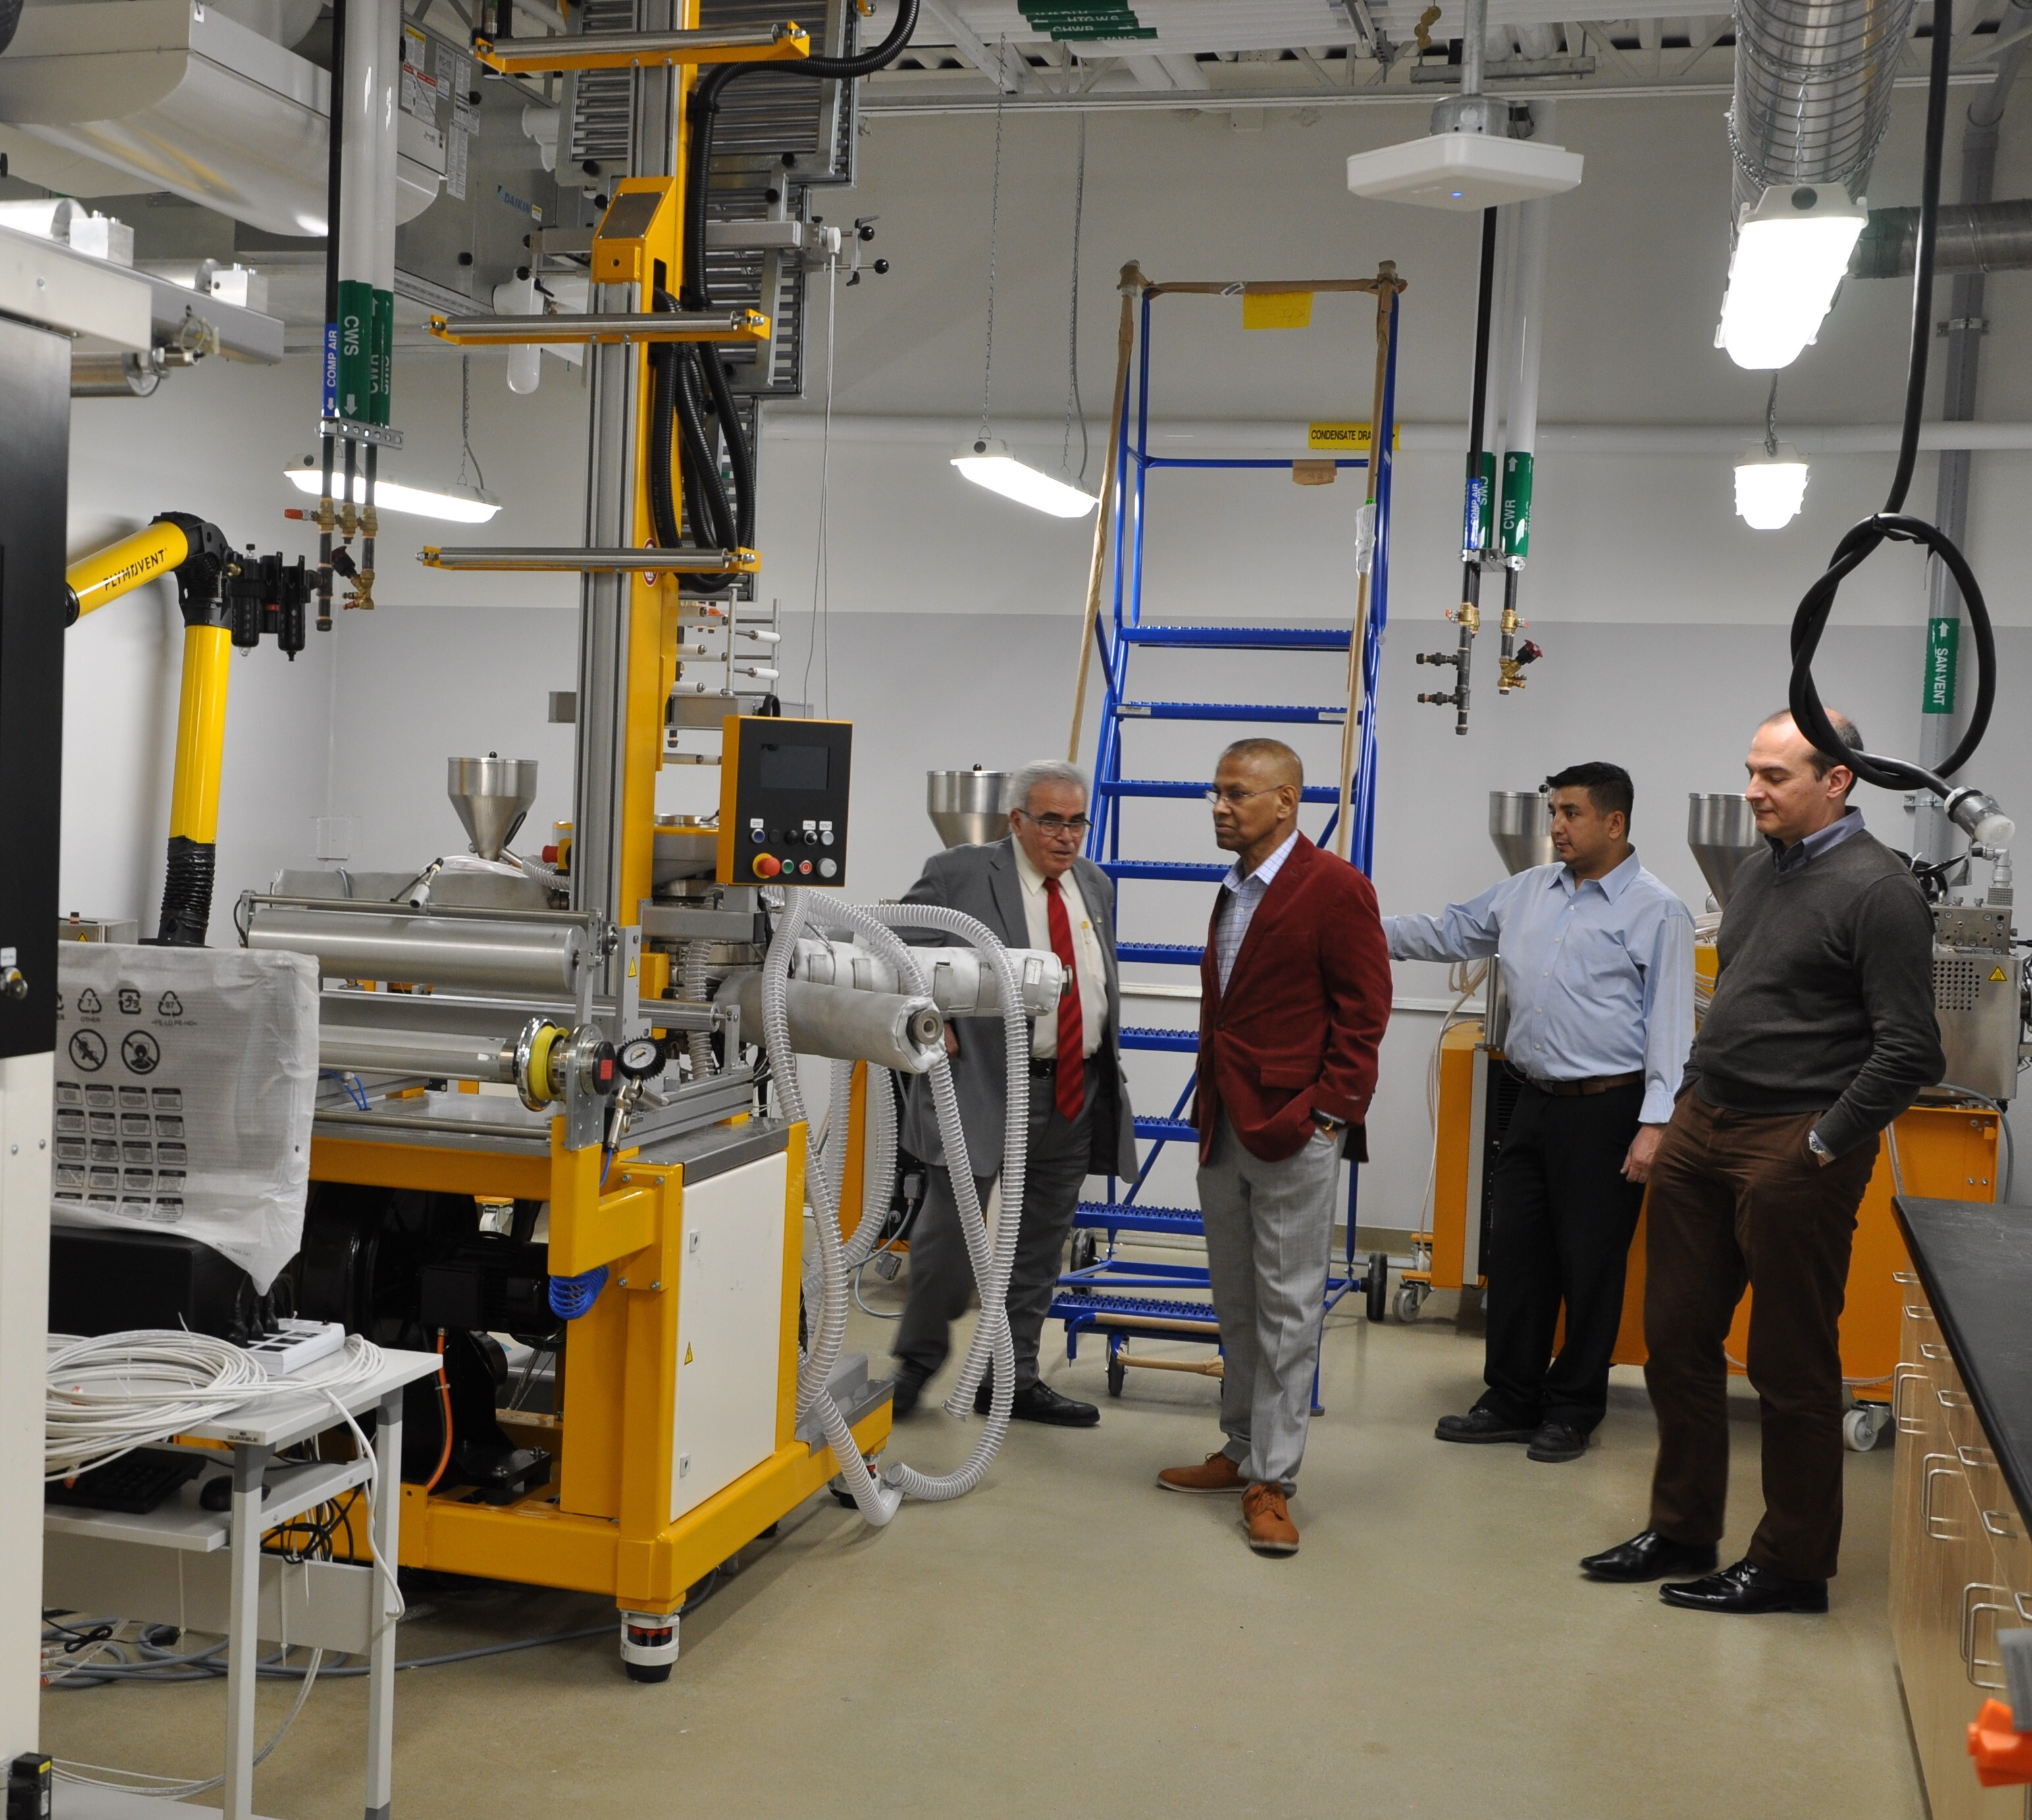 Image - Prof. Amar Mohanty giving a tour of Phase 3 of the BDDC to Advisory Board members